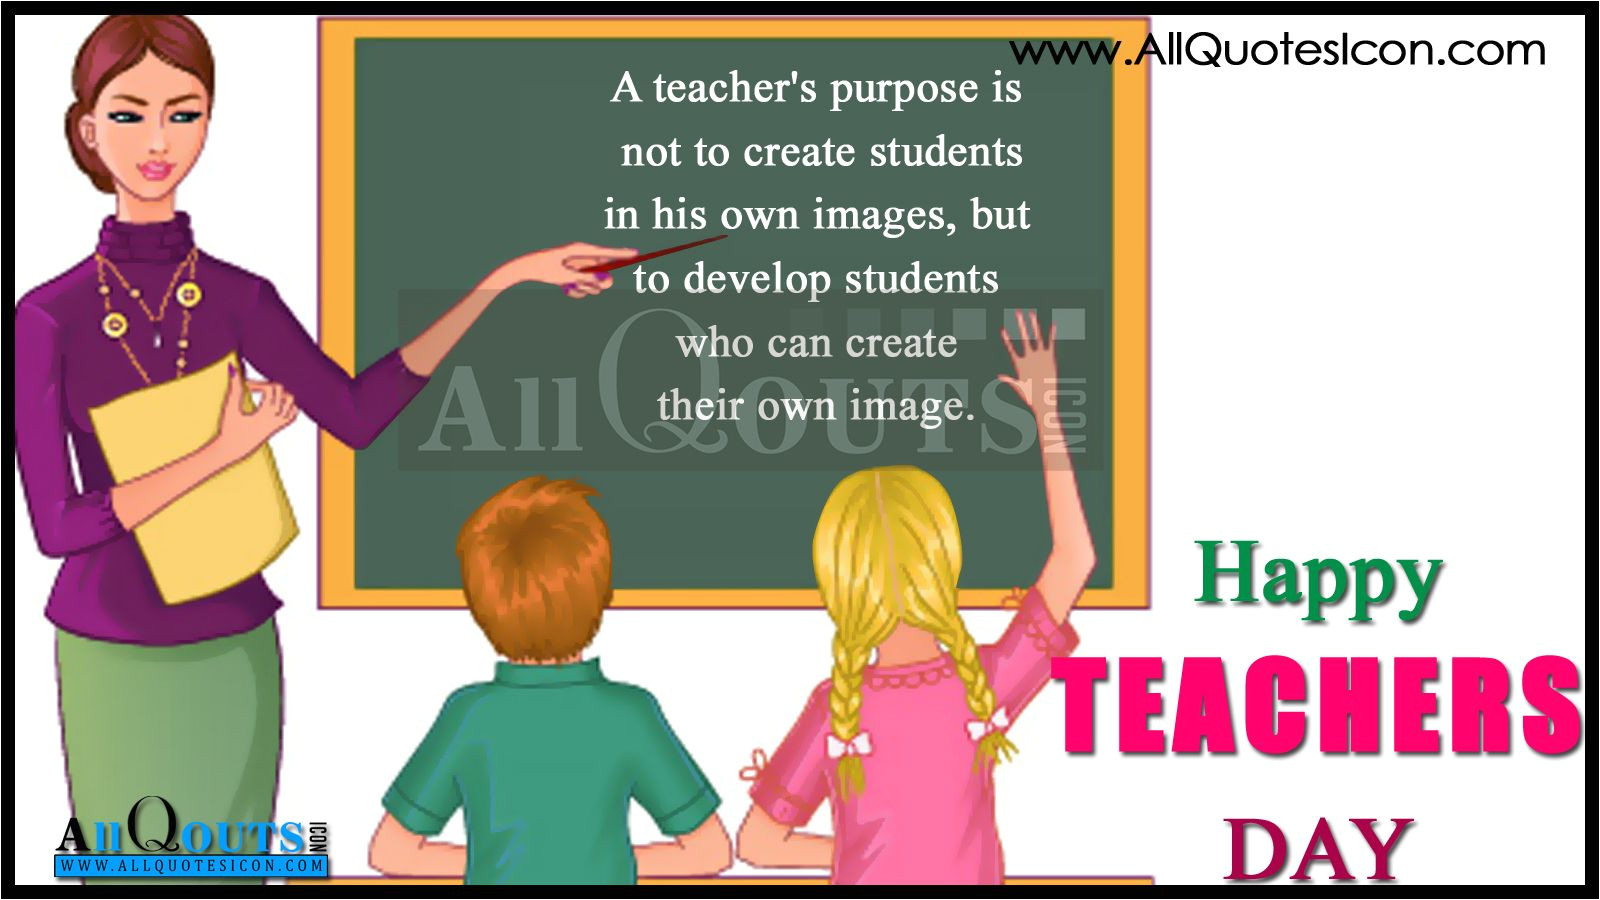 Teachers Day Card by Students 33 Teacher Day Messages to Honor Our Teachers From Students